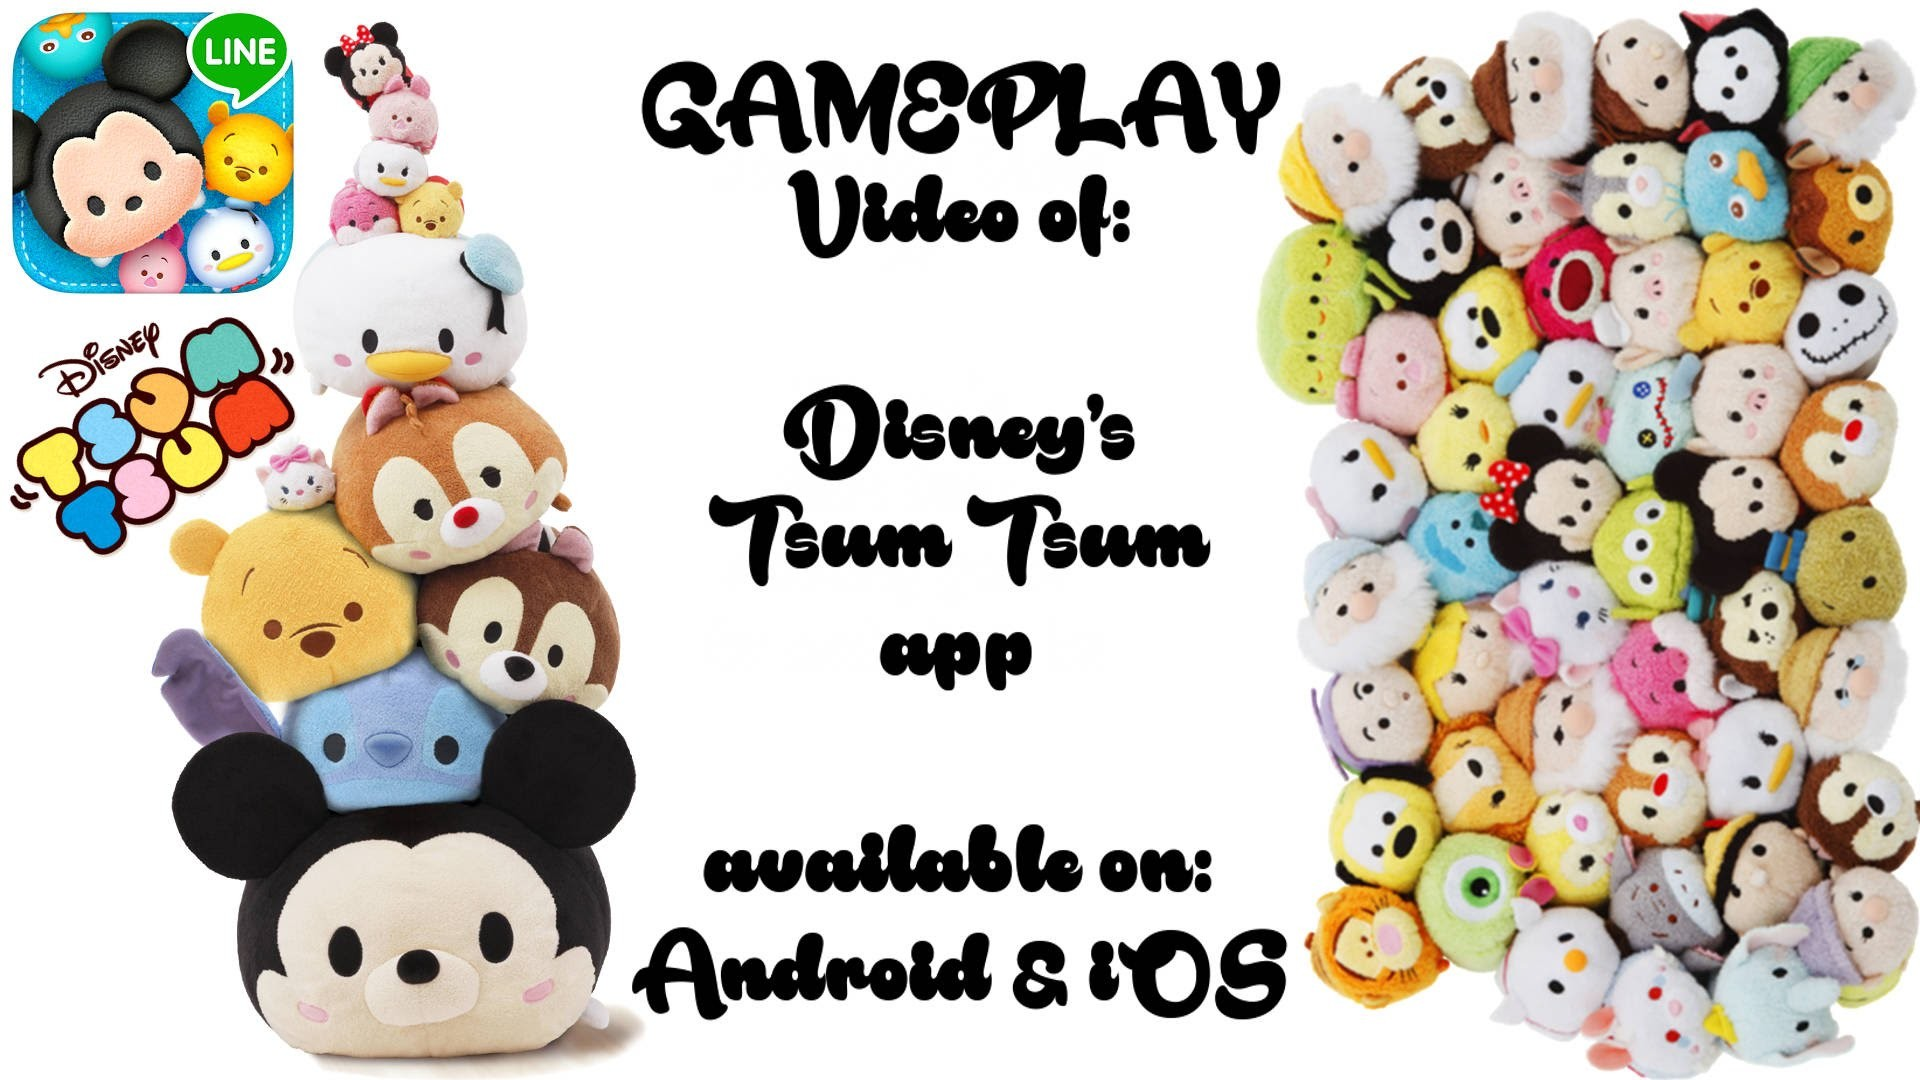 1920x1080 my 1st GAMEPLAY VIDEO: Disney's TSUM TSUM stacking video game from Line App  on Android & iOS